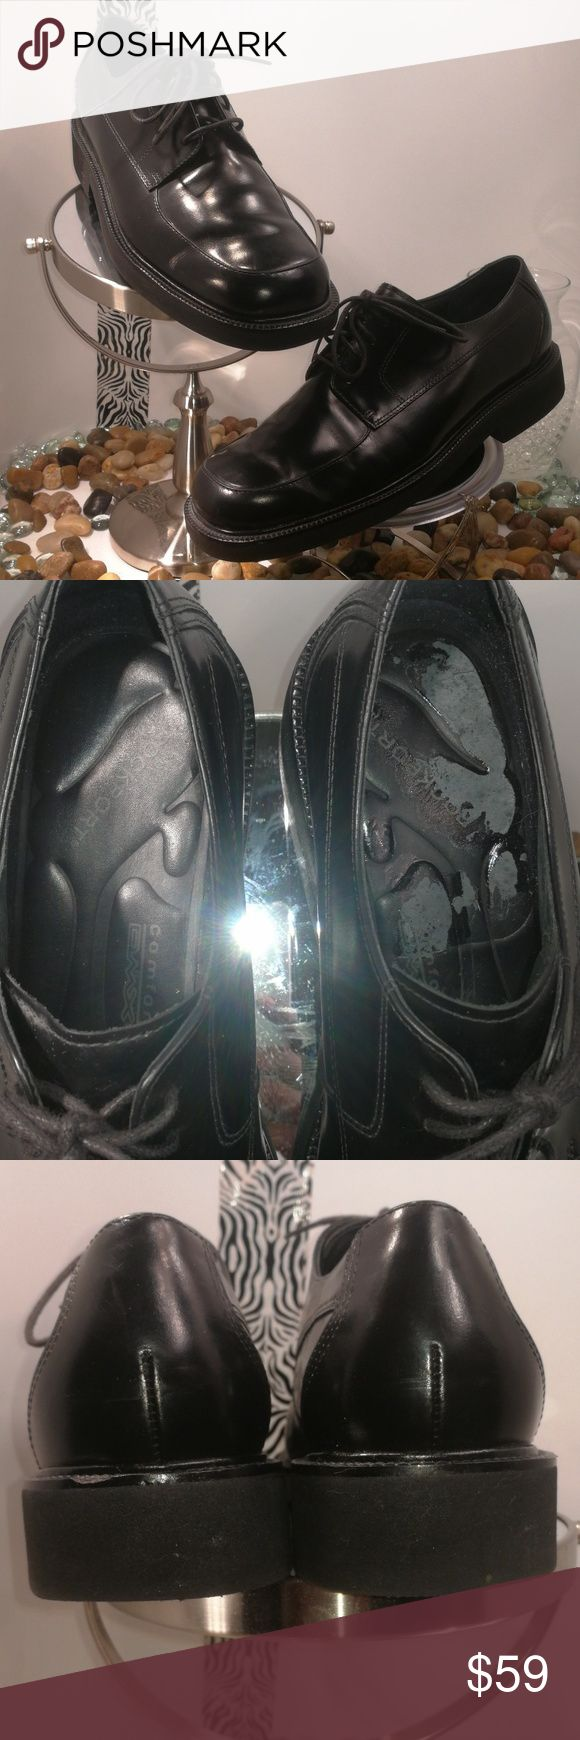 Rockport Mens 9.5 Black Leather Oxford Shoes Pre-owned item in excellent condition. Worn once. Shoes has a small chip on back of left shoe and the sole in left shoe is also chipped due to having Dr. Scholls insoles place in them.  Please see all pics to see details and defects. I'm available to answer any questions you may have about this item. Rockport Shoes Oxfords & Derbys